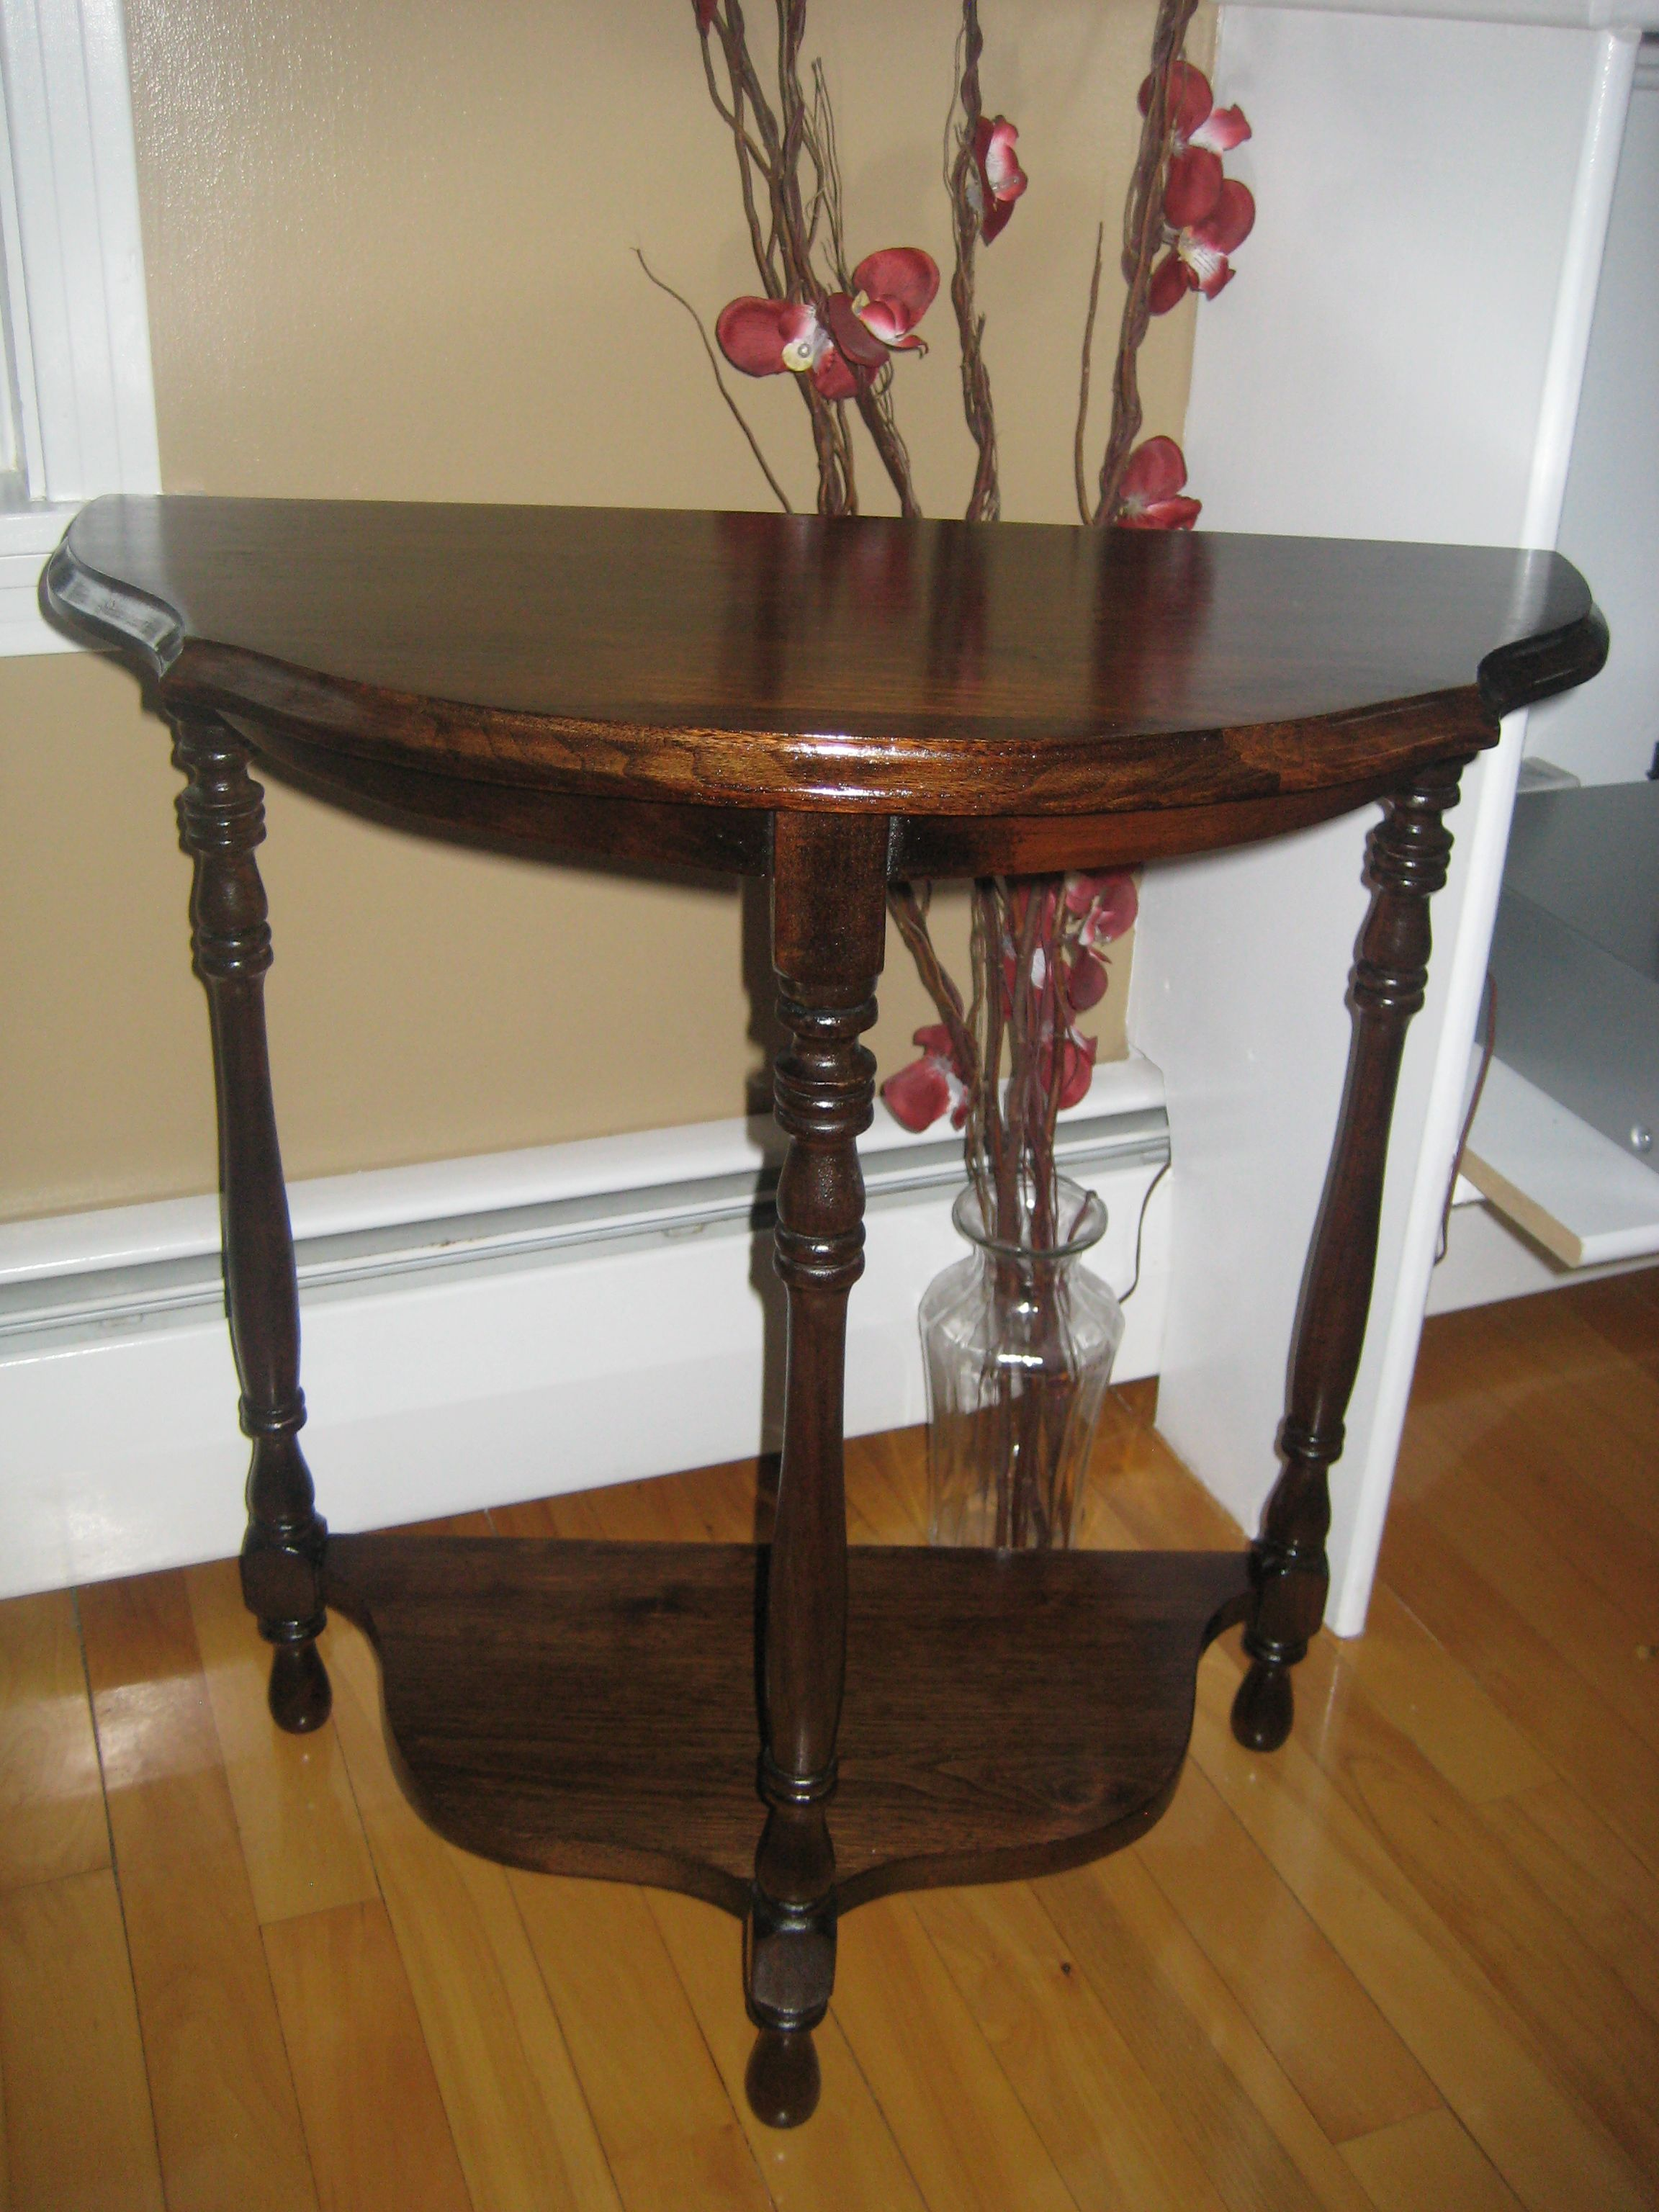 Refinished Half Moon Family Owned Vintage Table Circa 1930 S Vintage Table Vintage Furniture Foyer Furniture